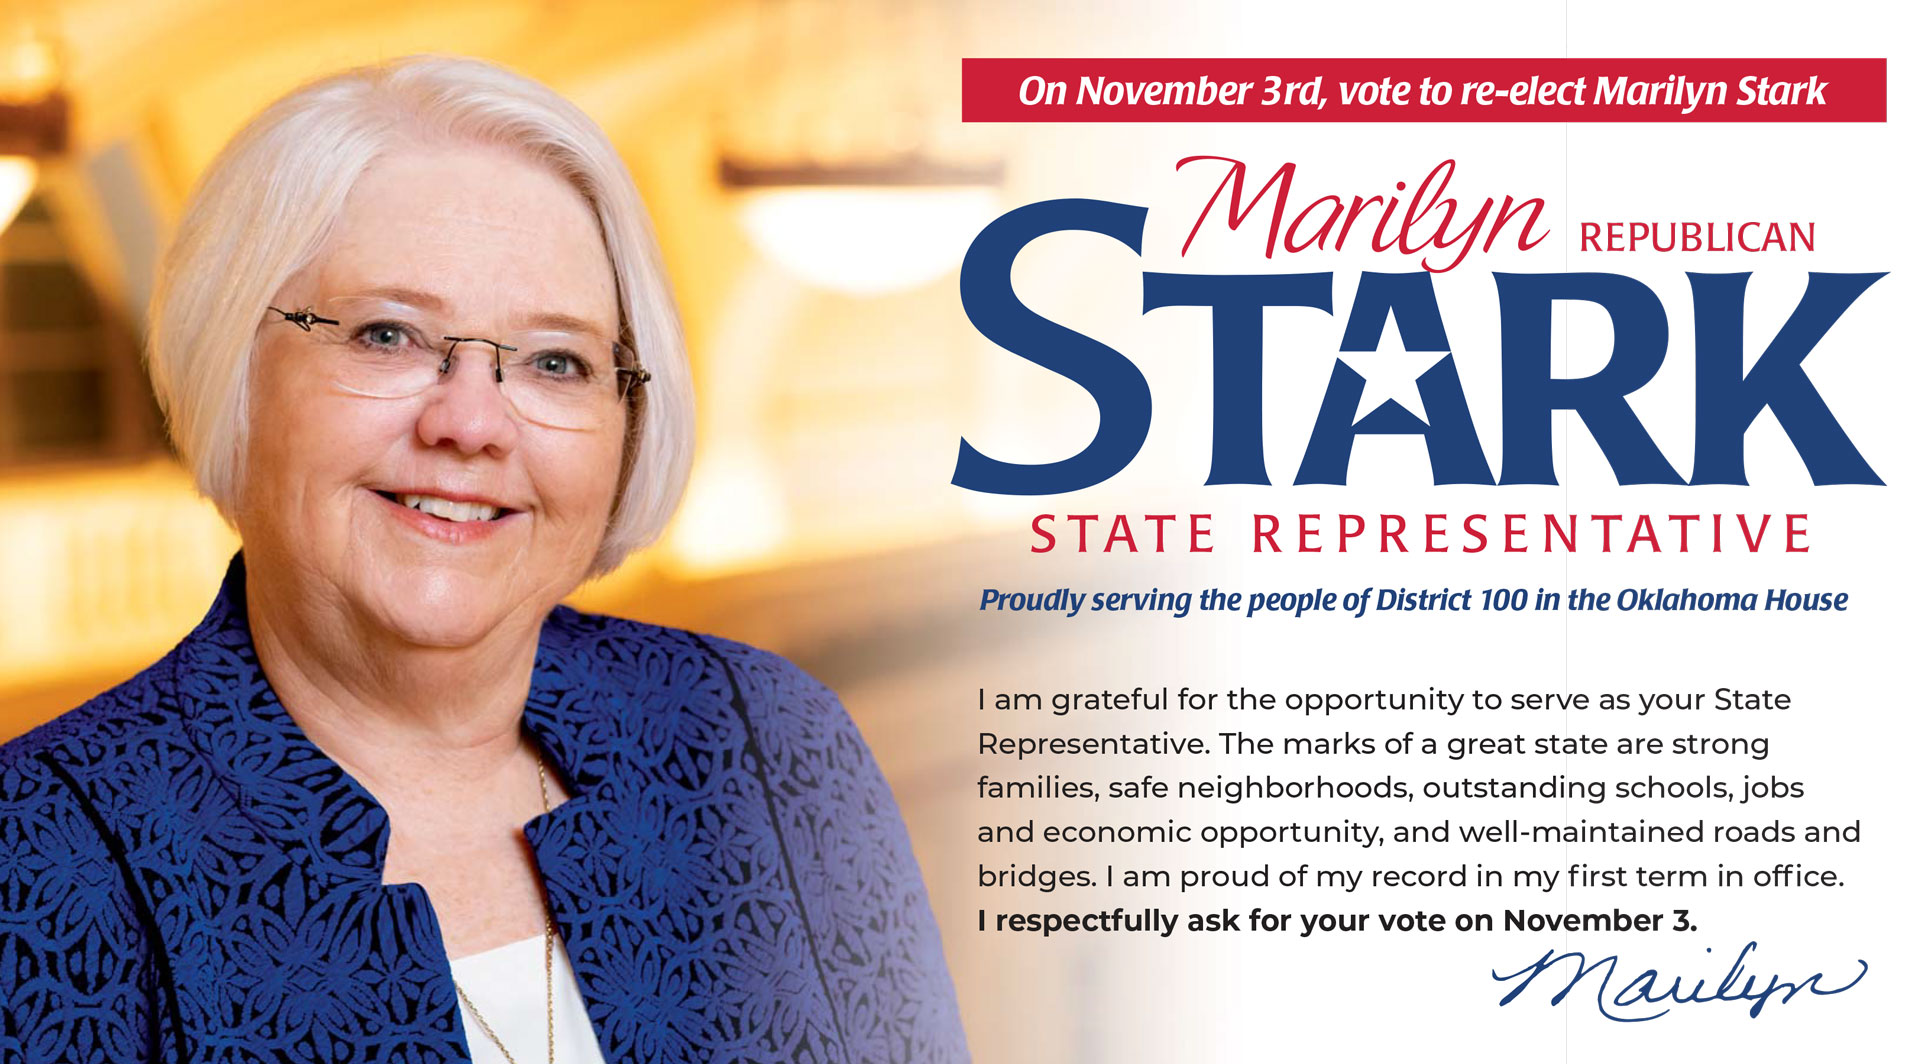 On November 3rd, Vote to re-elect Marilyn Stark